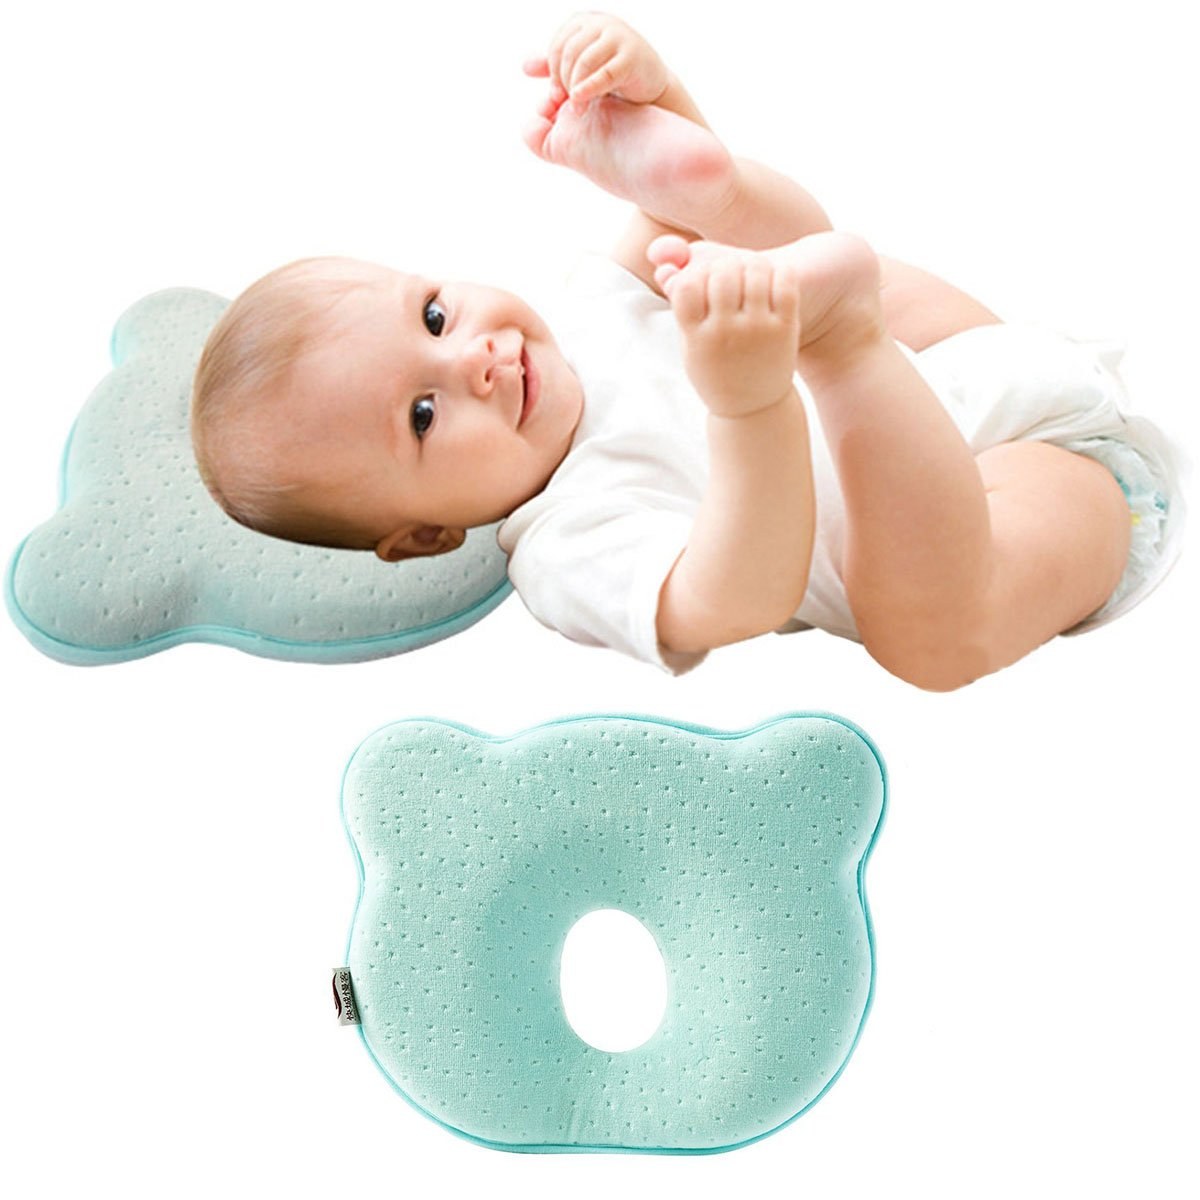 KINGSUNG Baby Pillow Soft Infant Head Orthopedic Shaping Pillow Memory Foam Sleeping Cushion to Prevent Plagiocephaly Flat Head Syndrome